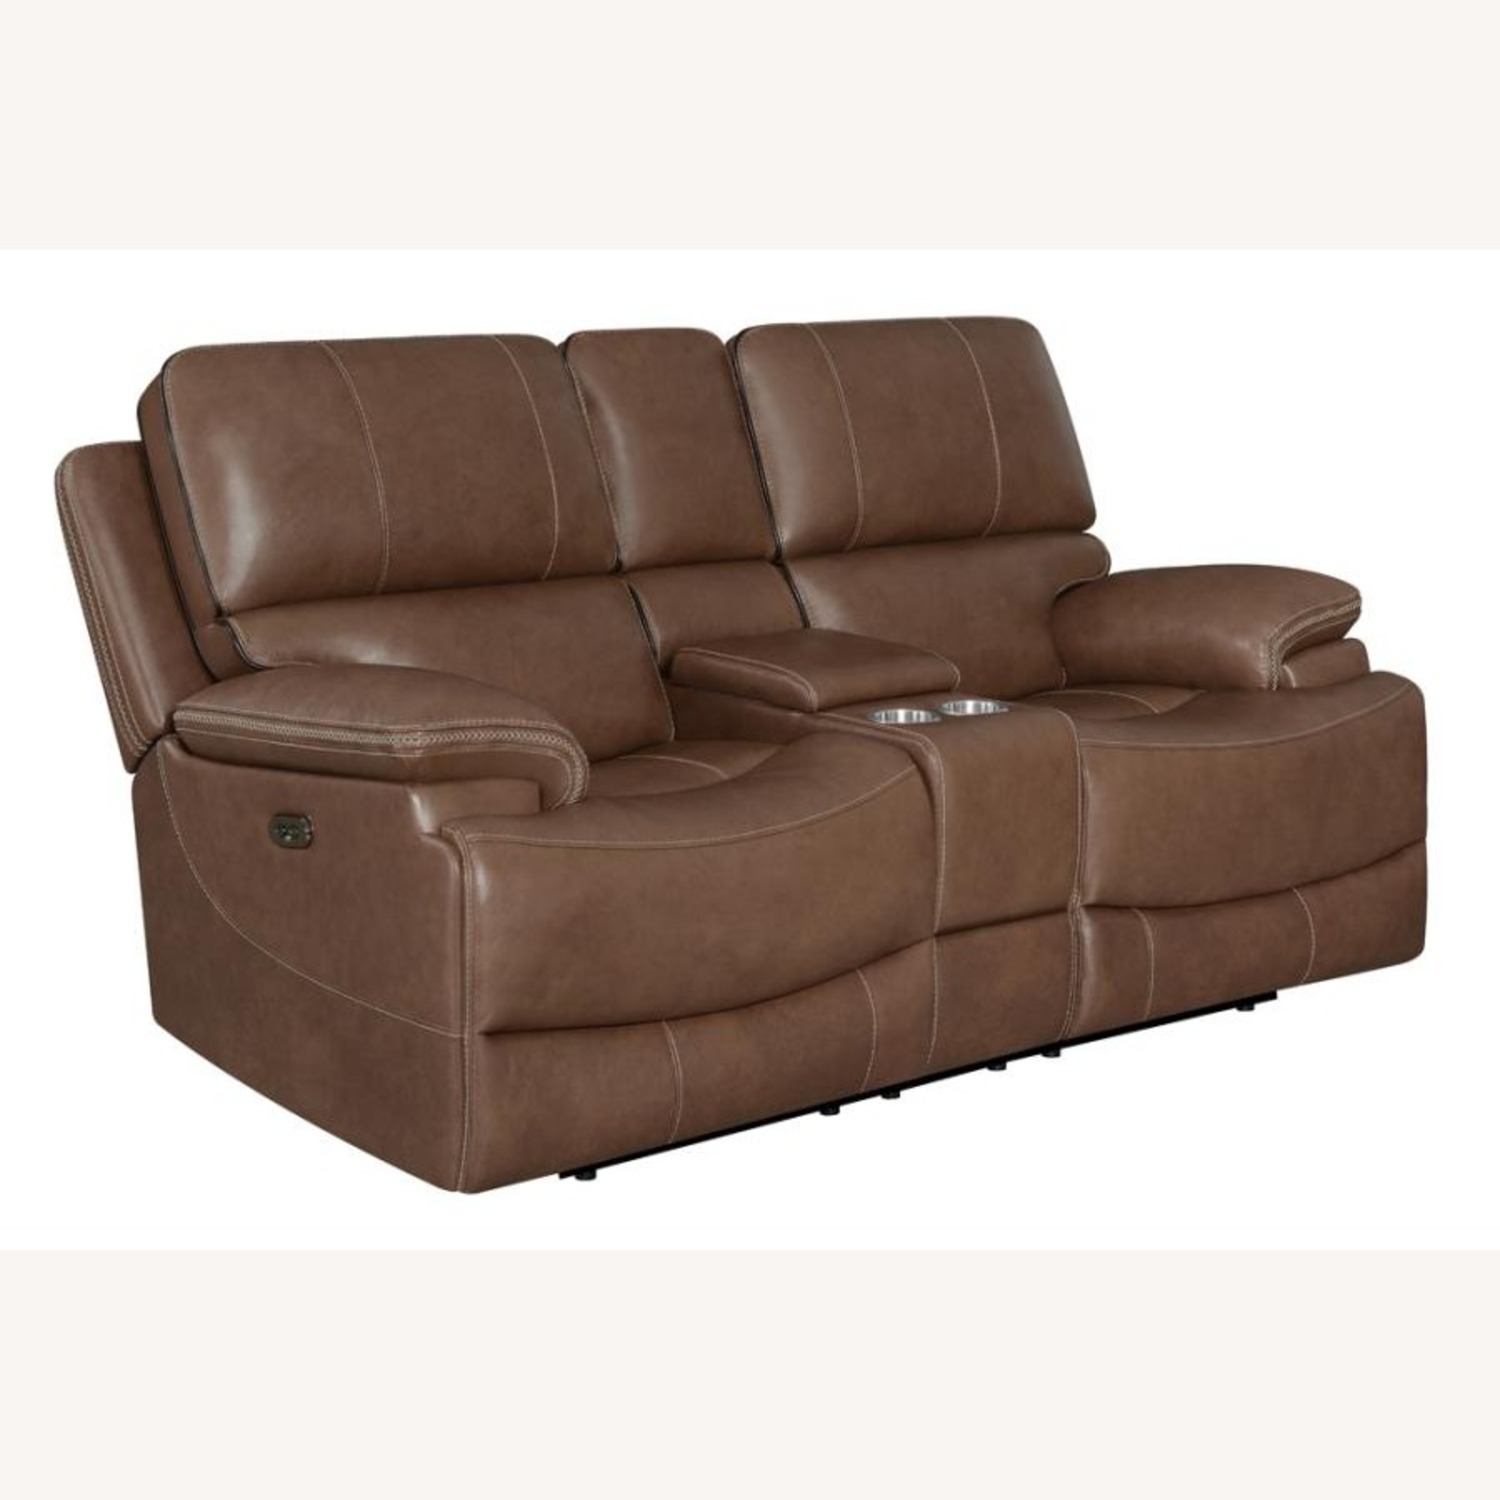 Power Loveseat In Saddle Brown W/ Reclining Seats - image-0